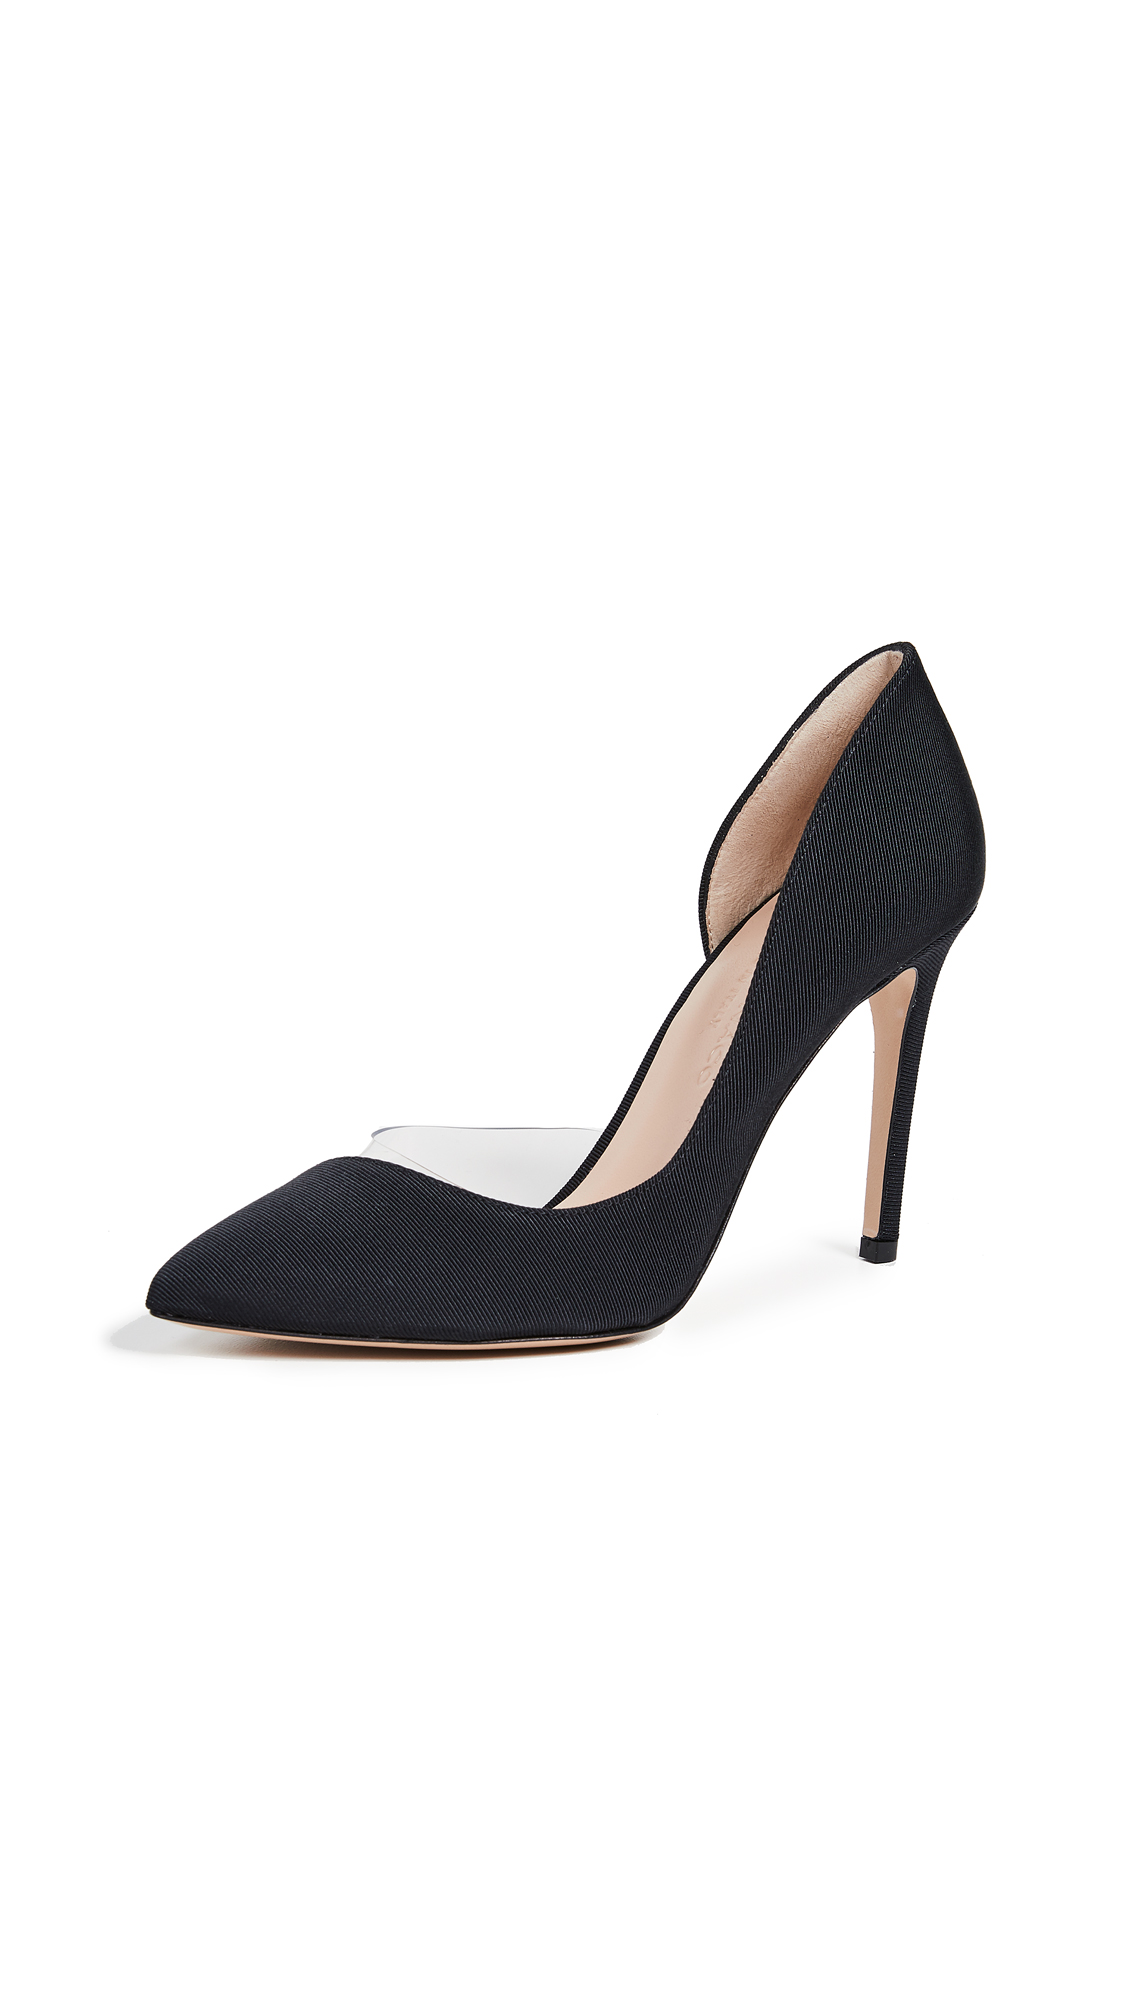 Club Monaco Milah Pumps - Black